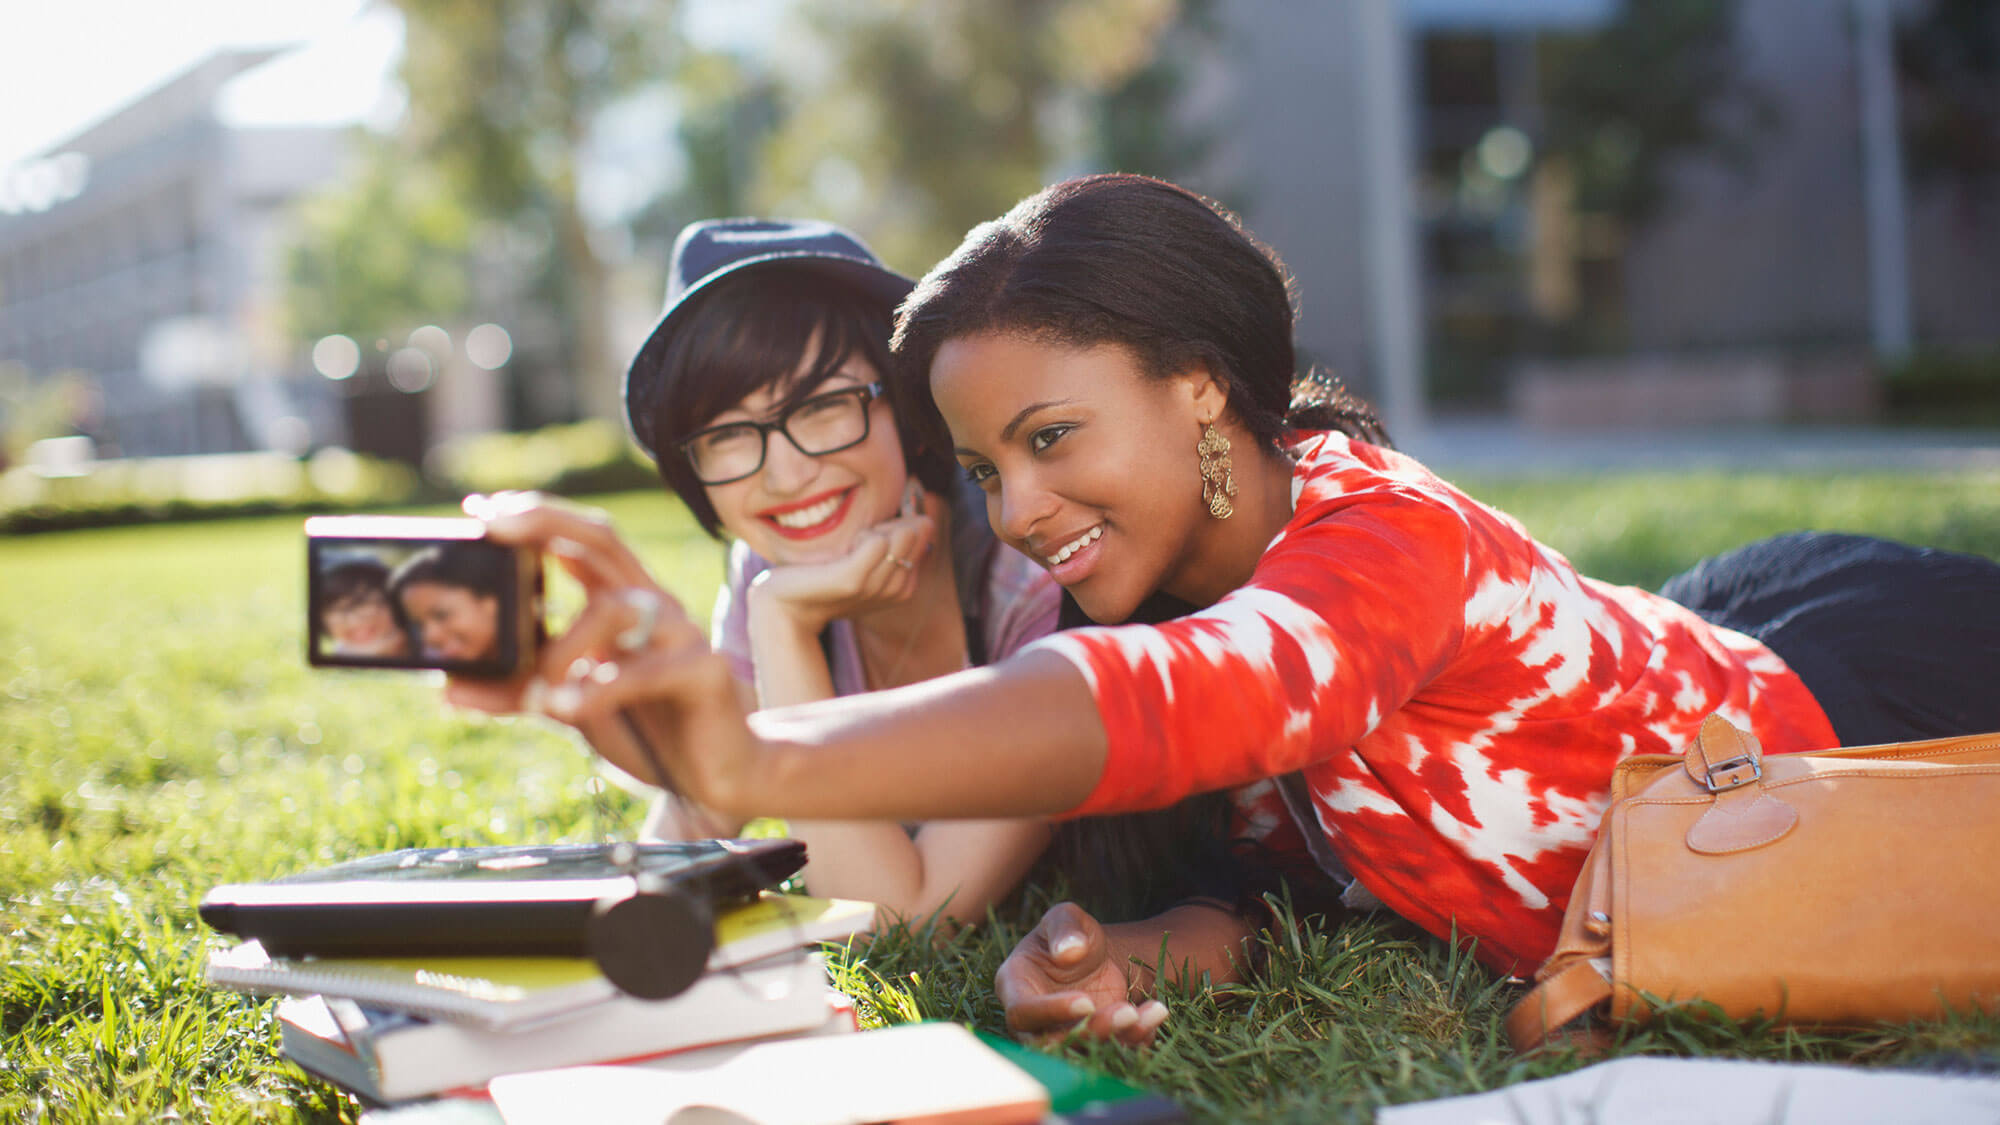 two young girls outside on the grass taking a selfie